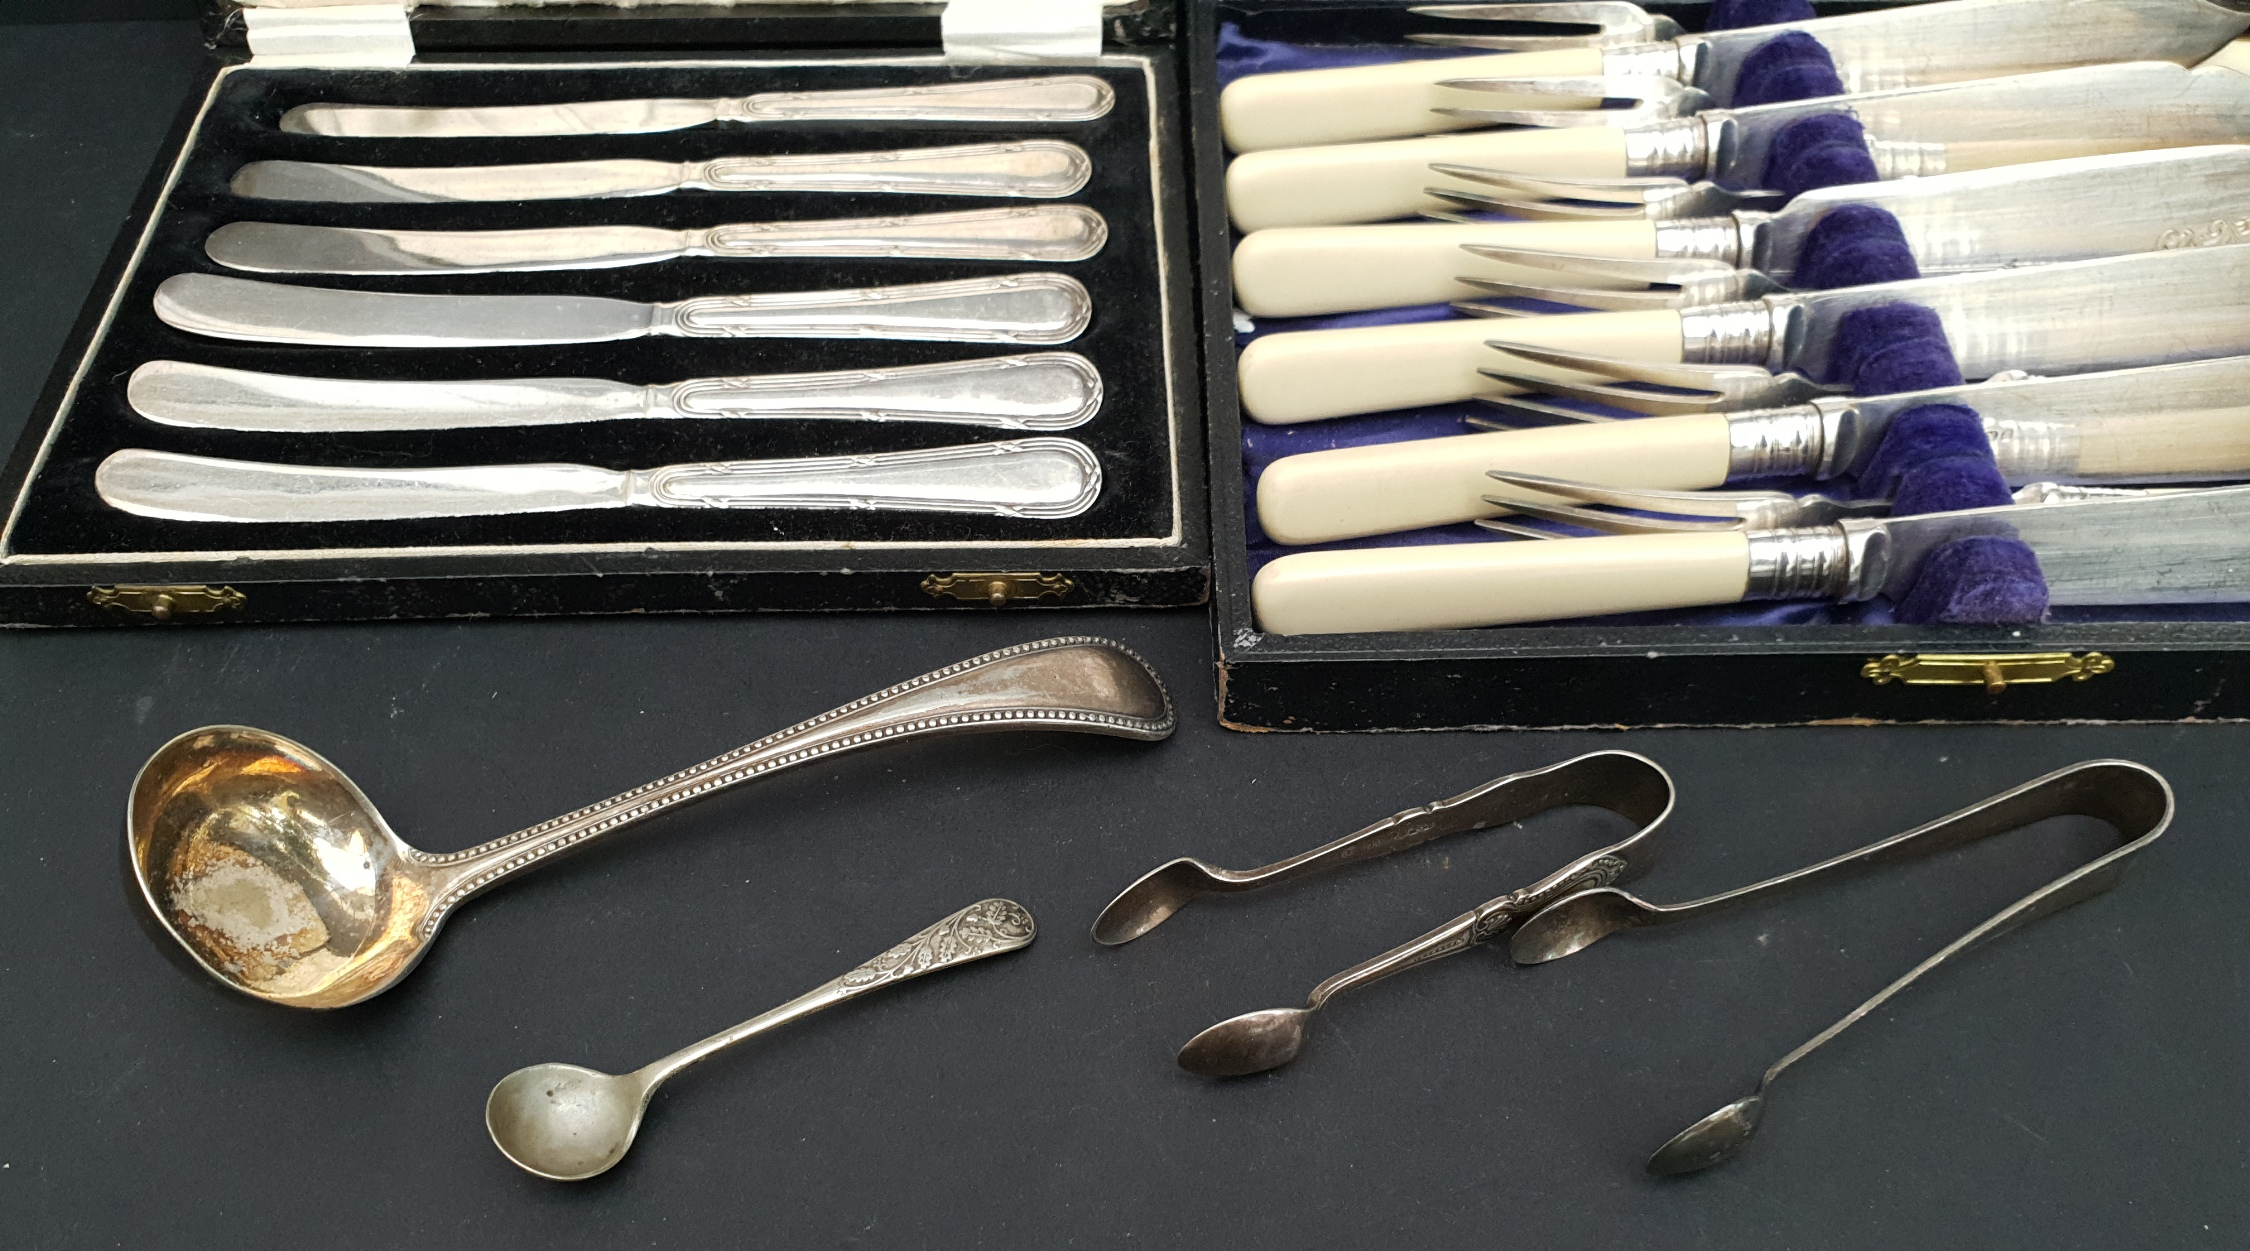 Vintage 2 x Boxed Flatware and Others - Image 2 of 2